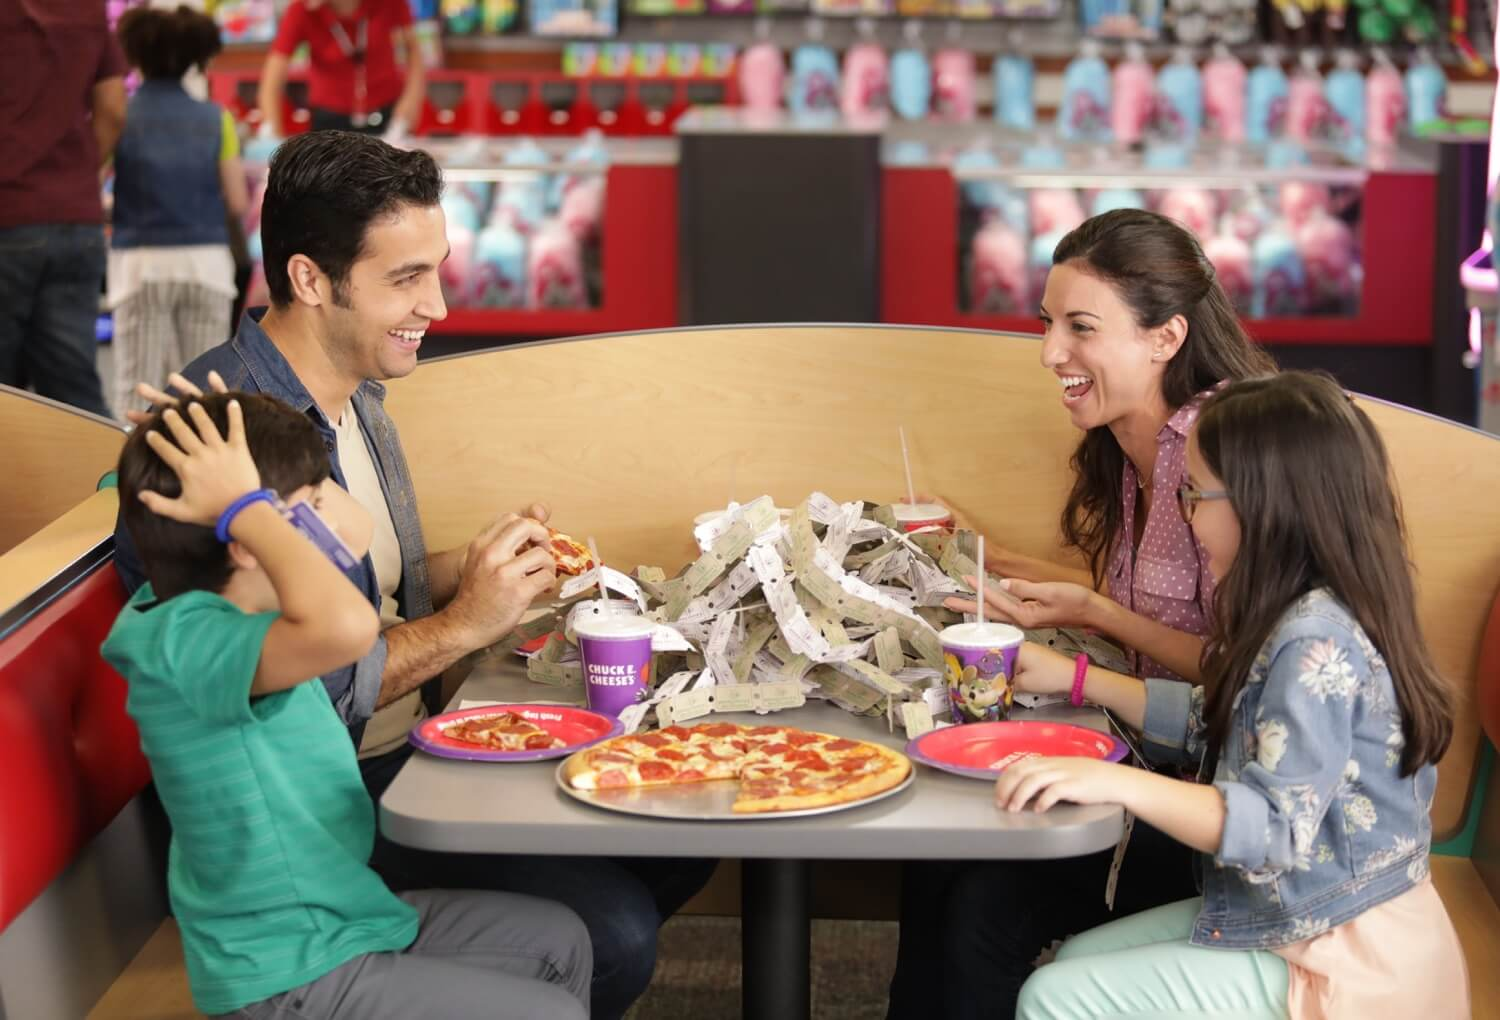 Family eating pizza with table full of tickets